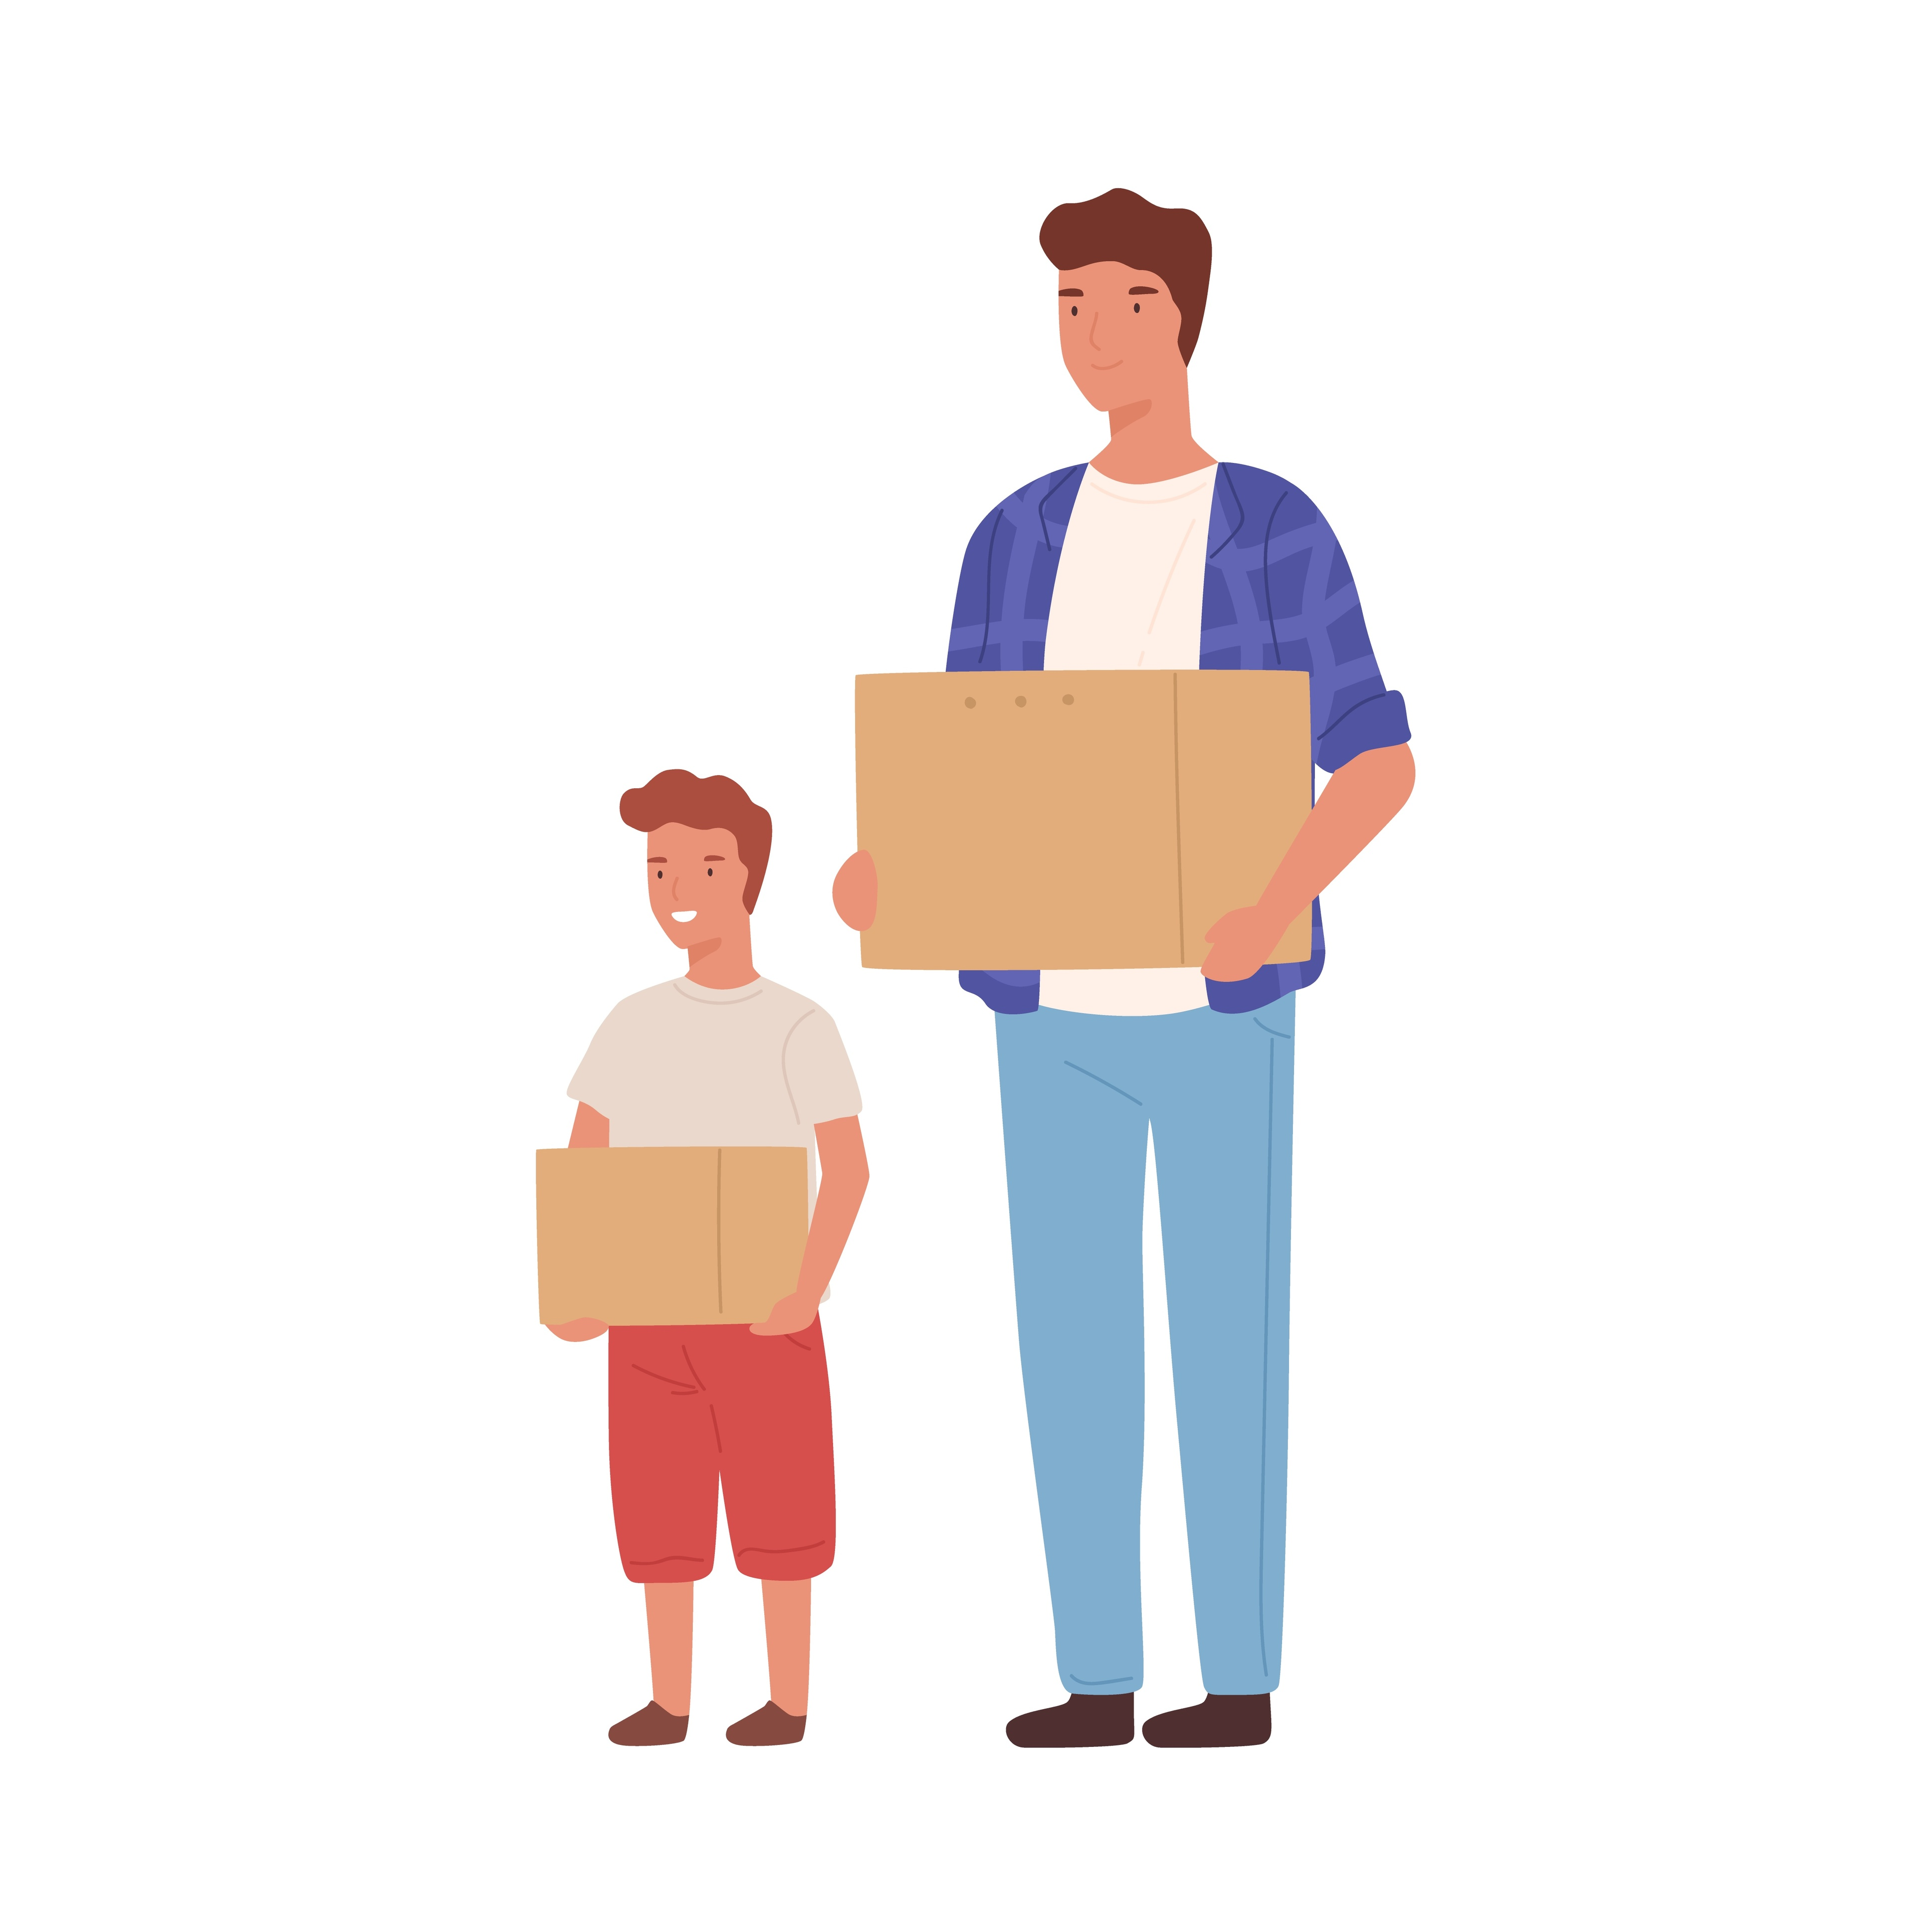 Illustration of a child and their parent both holding cardboard boxes.